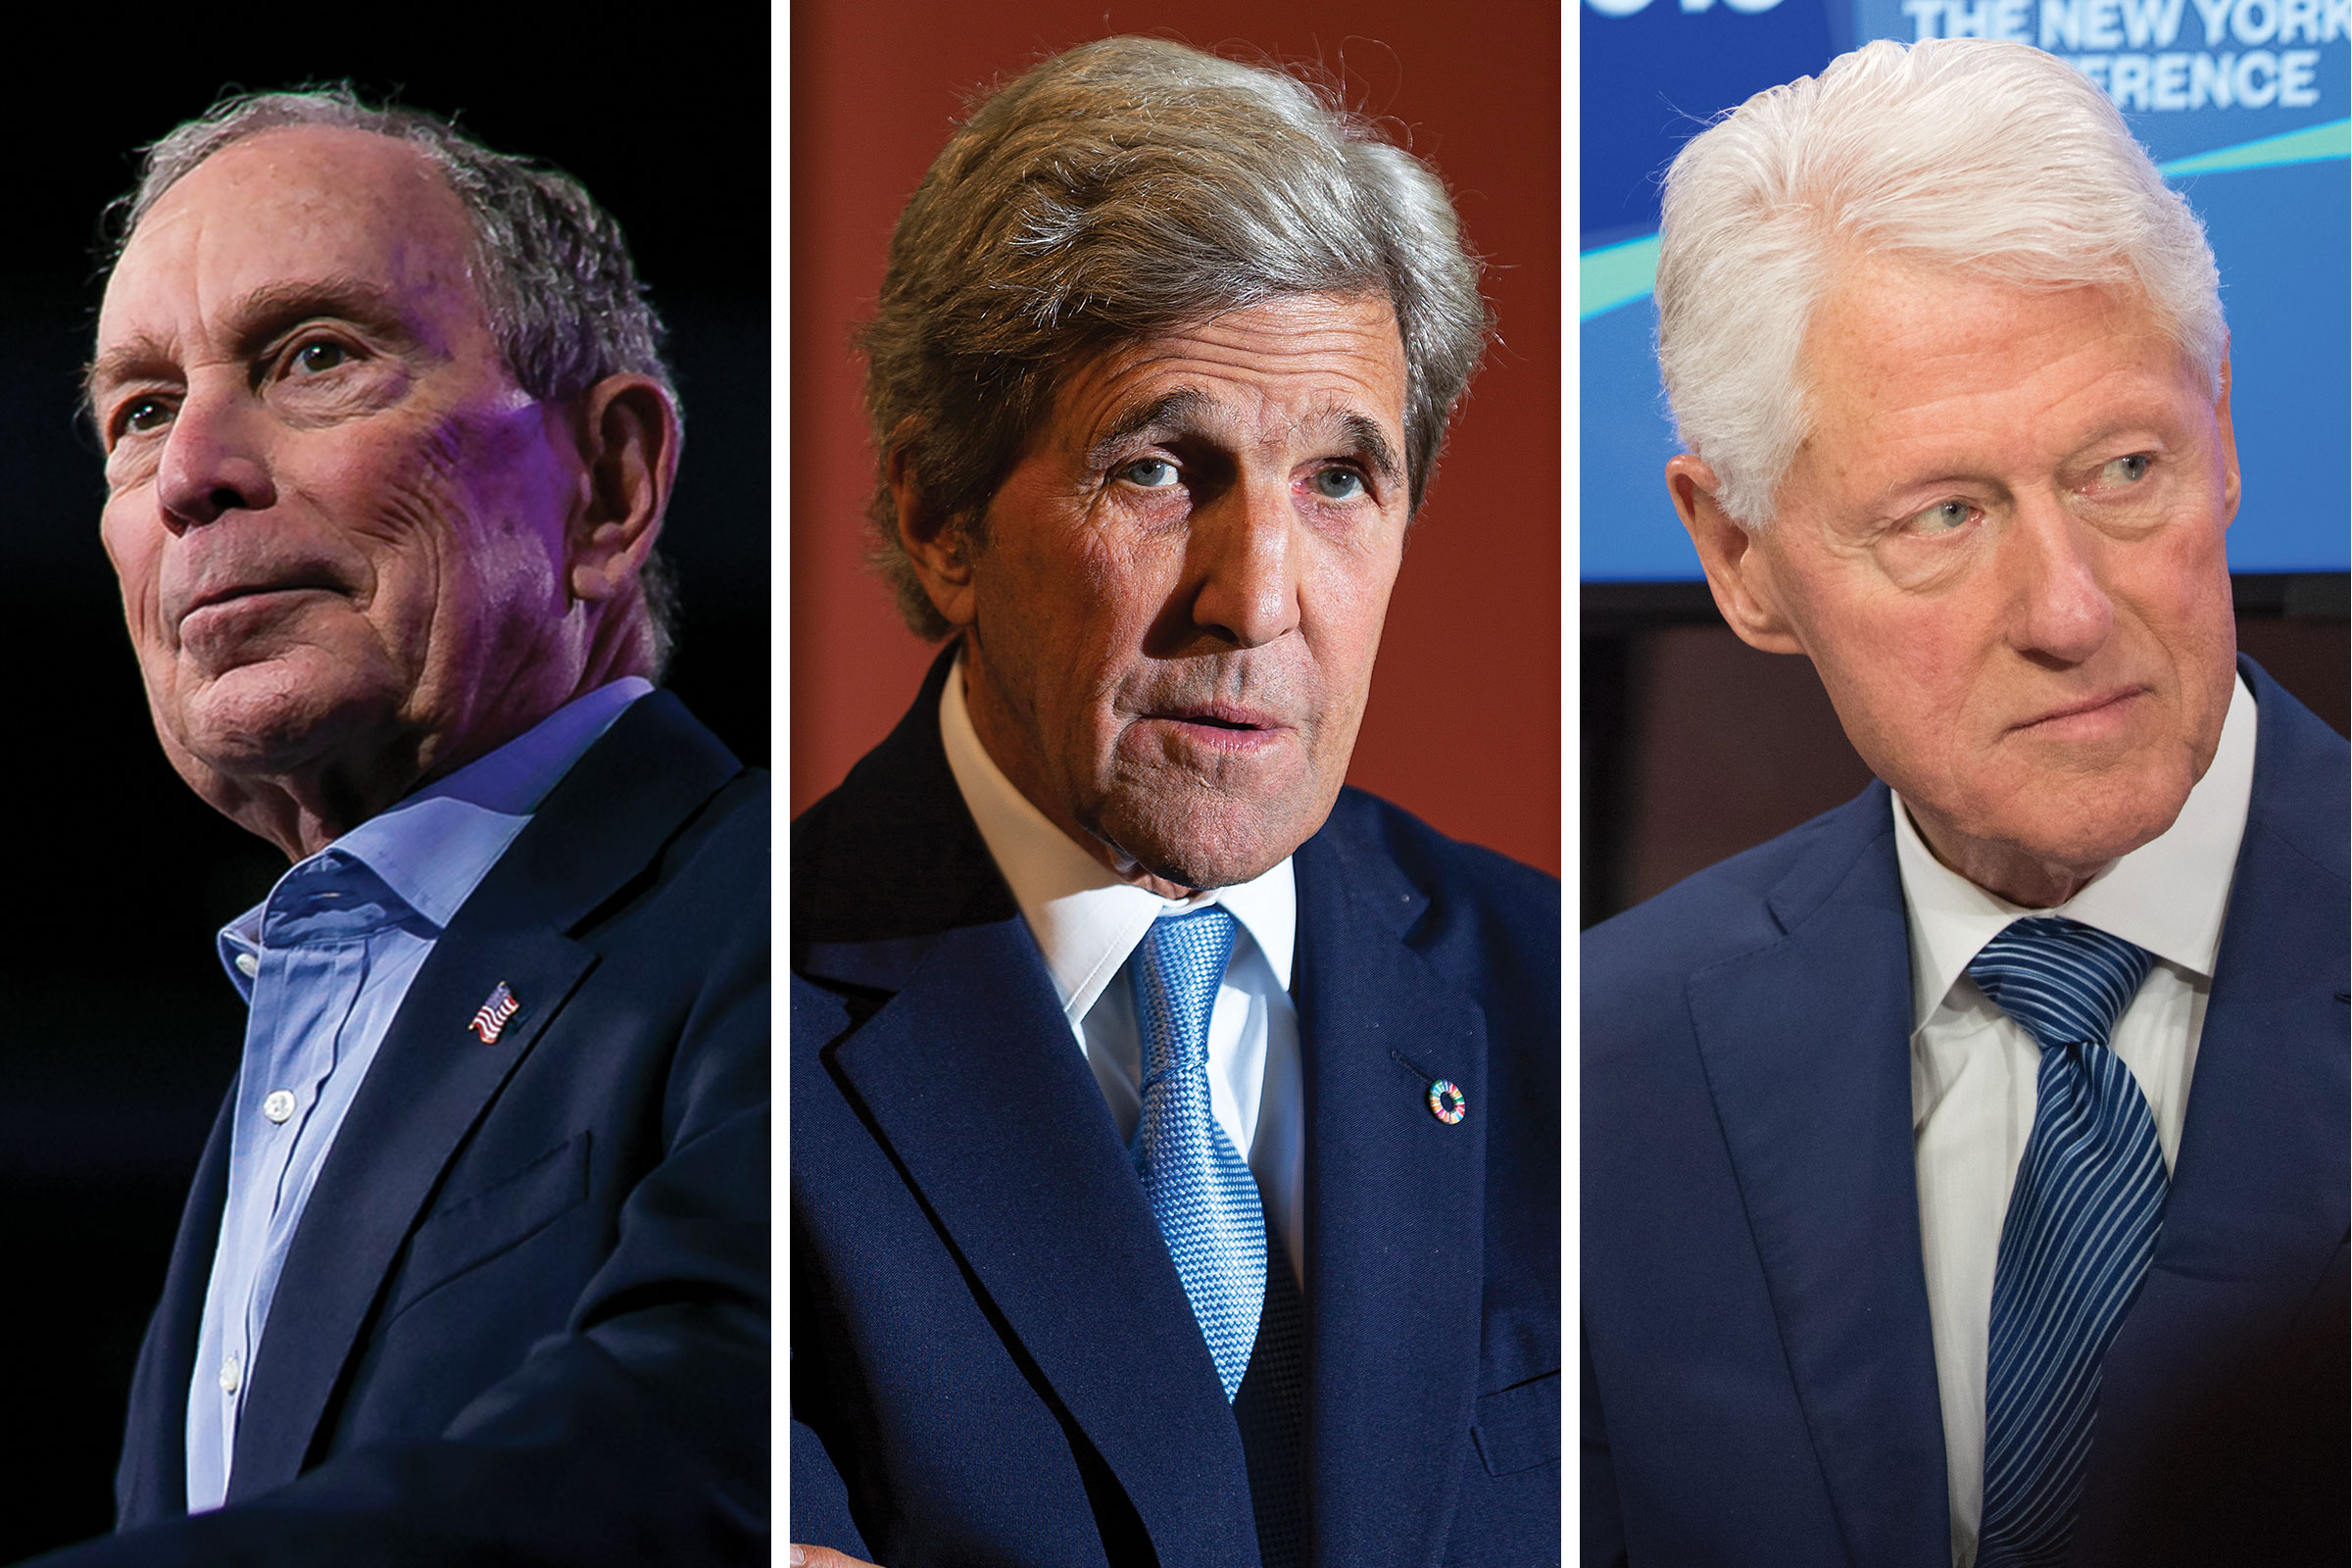 Former Mayor of New York City Mike Bloomberg; Former Secretary of State John Kerry; Former President Bill Clinton